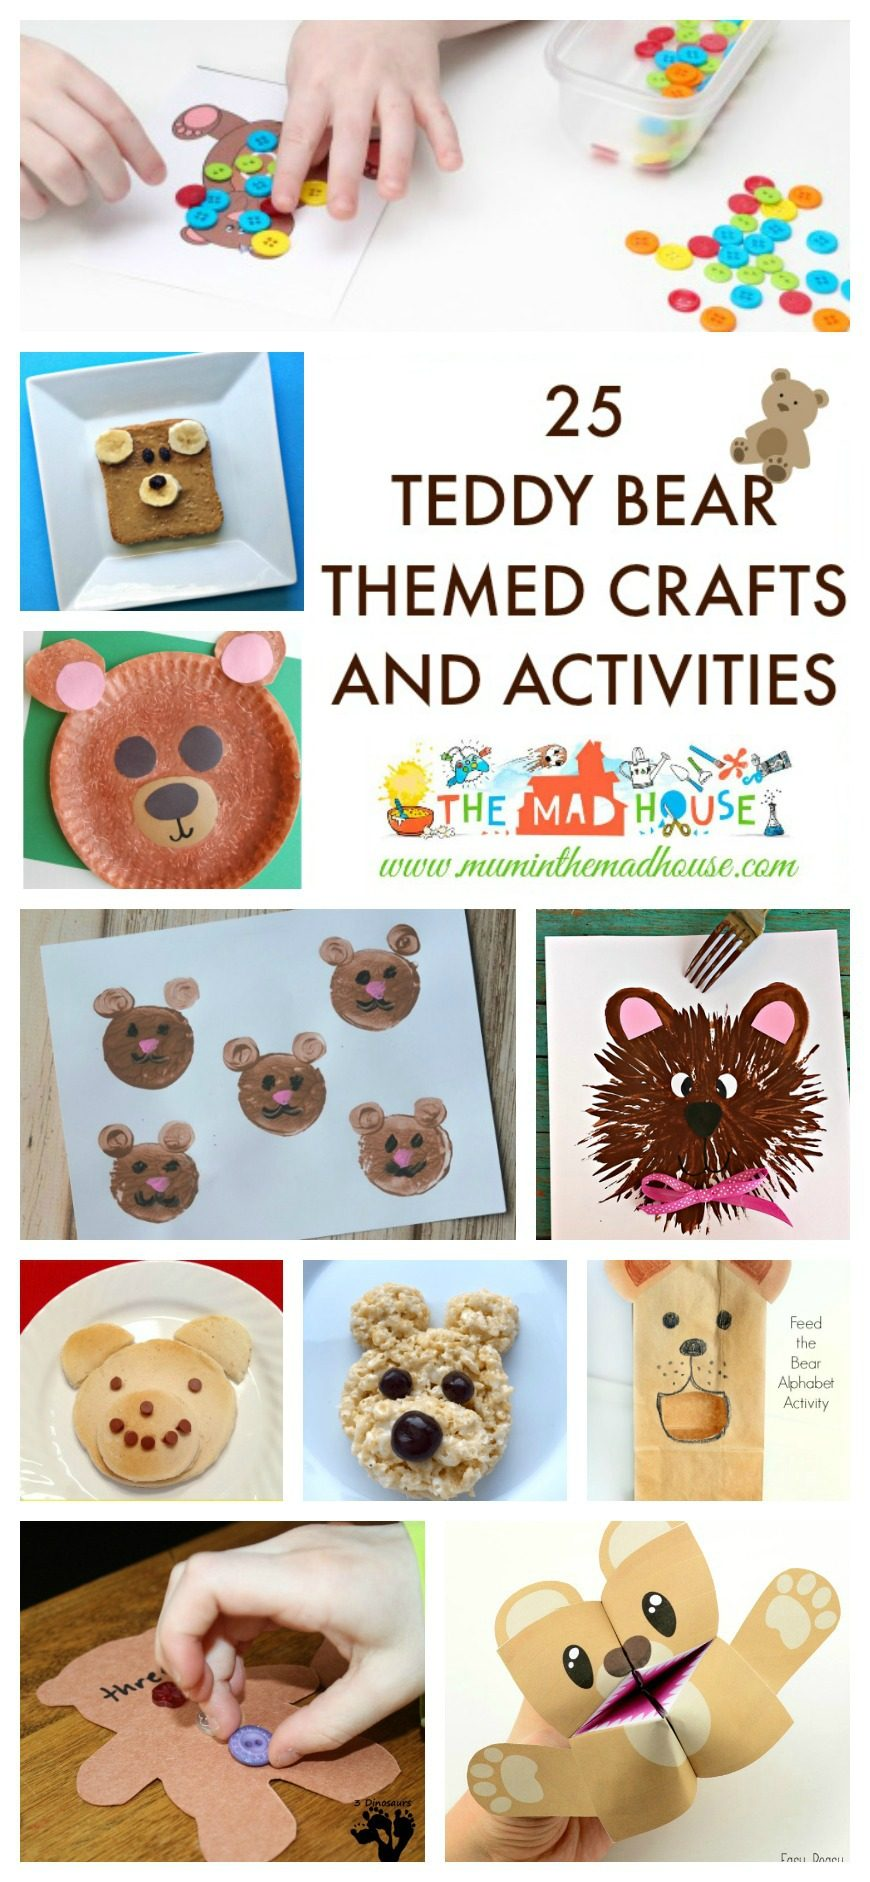 Celebrate all things Teddy Bear with this roundup of teddy bear activities, crafts and foods ideas to suit toddlers, preschoolers and school aged kids.  You will find lots of art and craft inspiration, along with free teddy bear themed printables perfect for children.